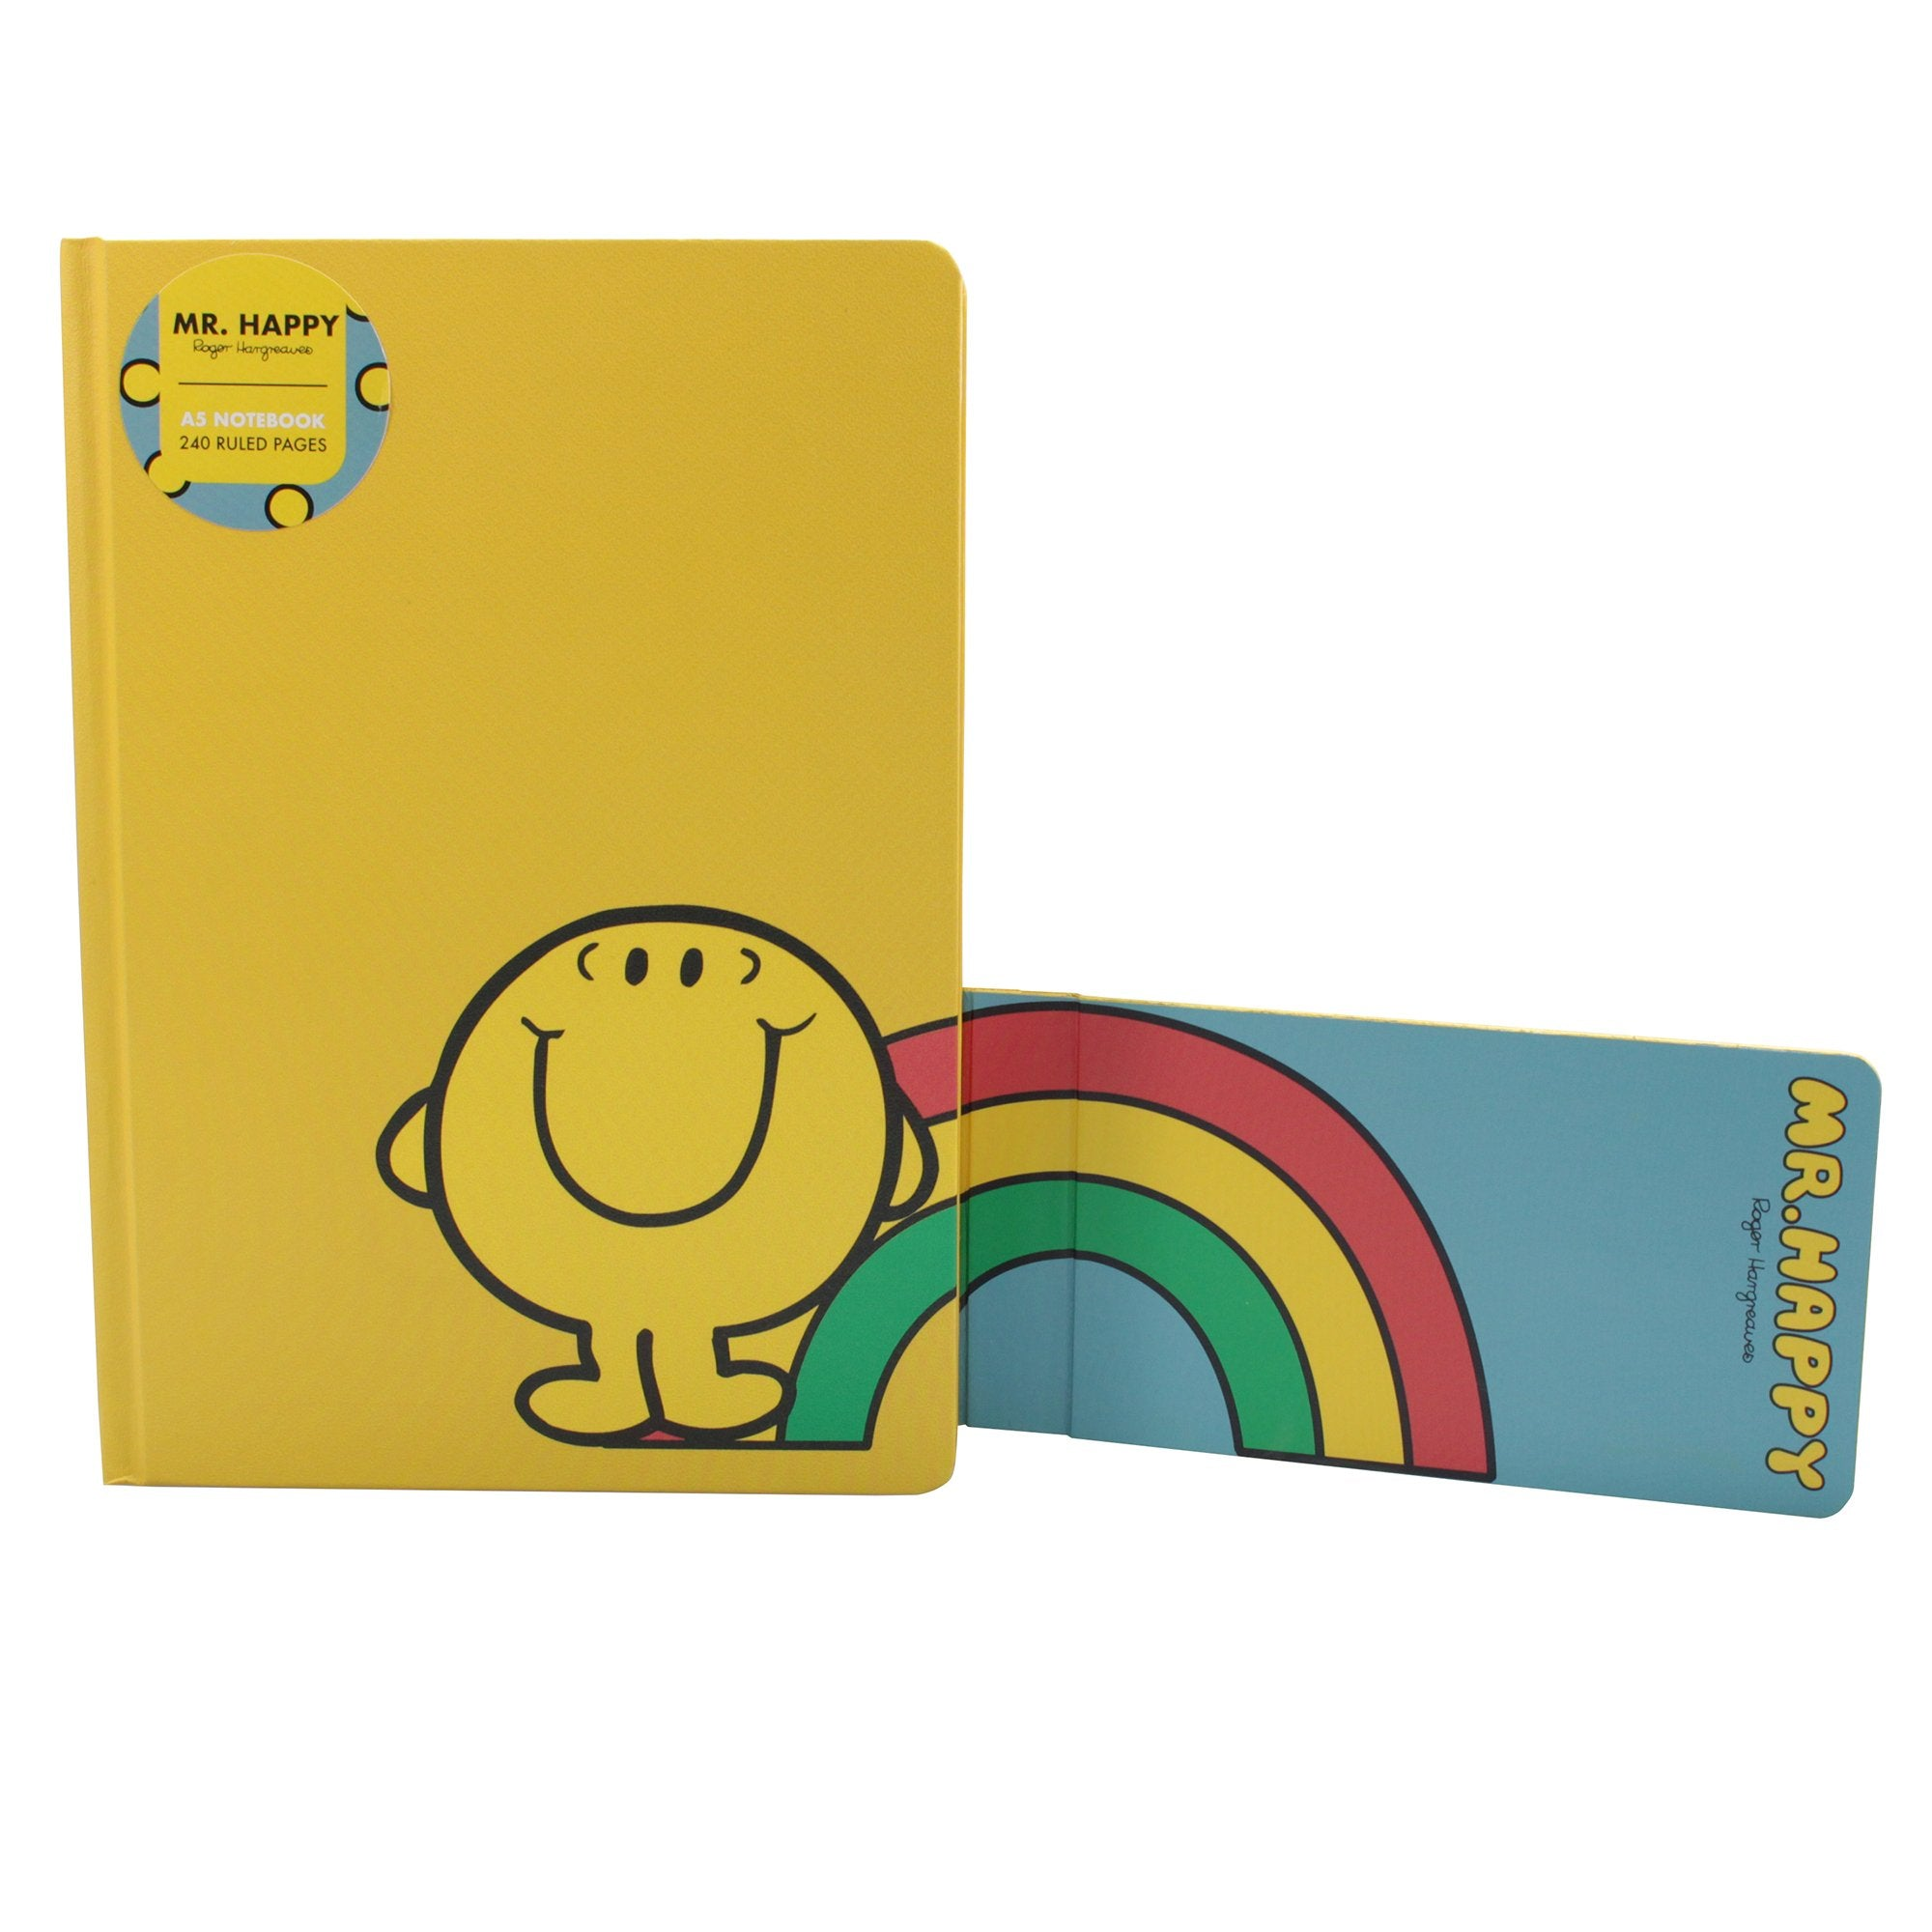 Mr. Men Little Miss A5 Notebook - Mr. Happy - Half Moon Bay US